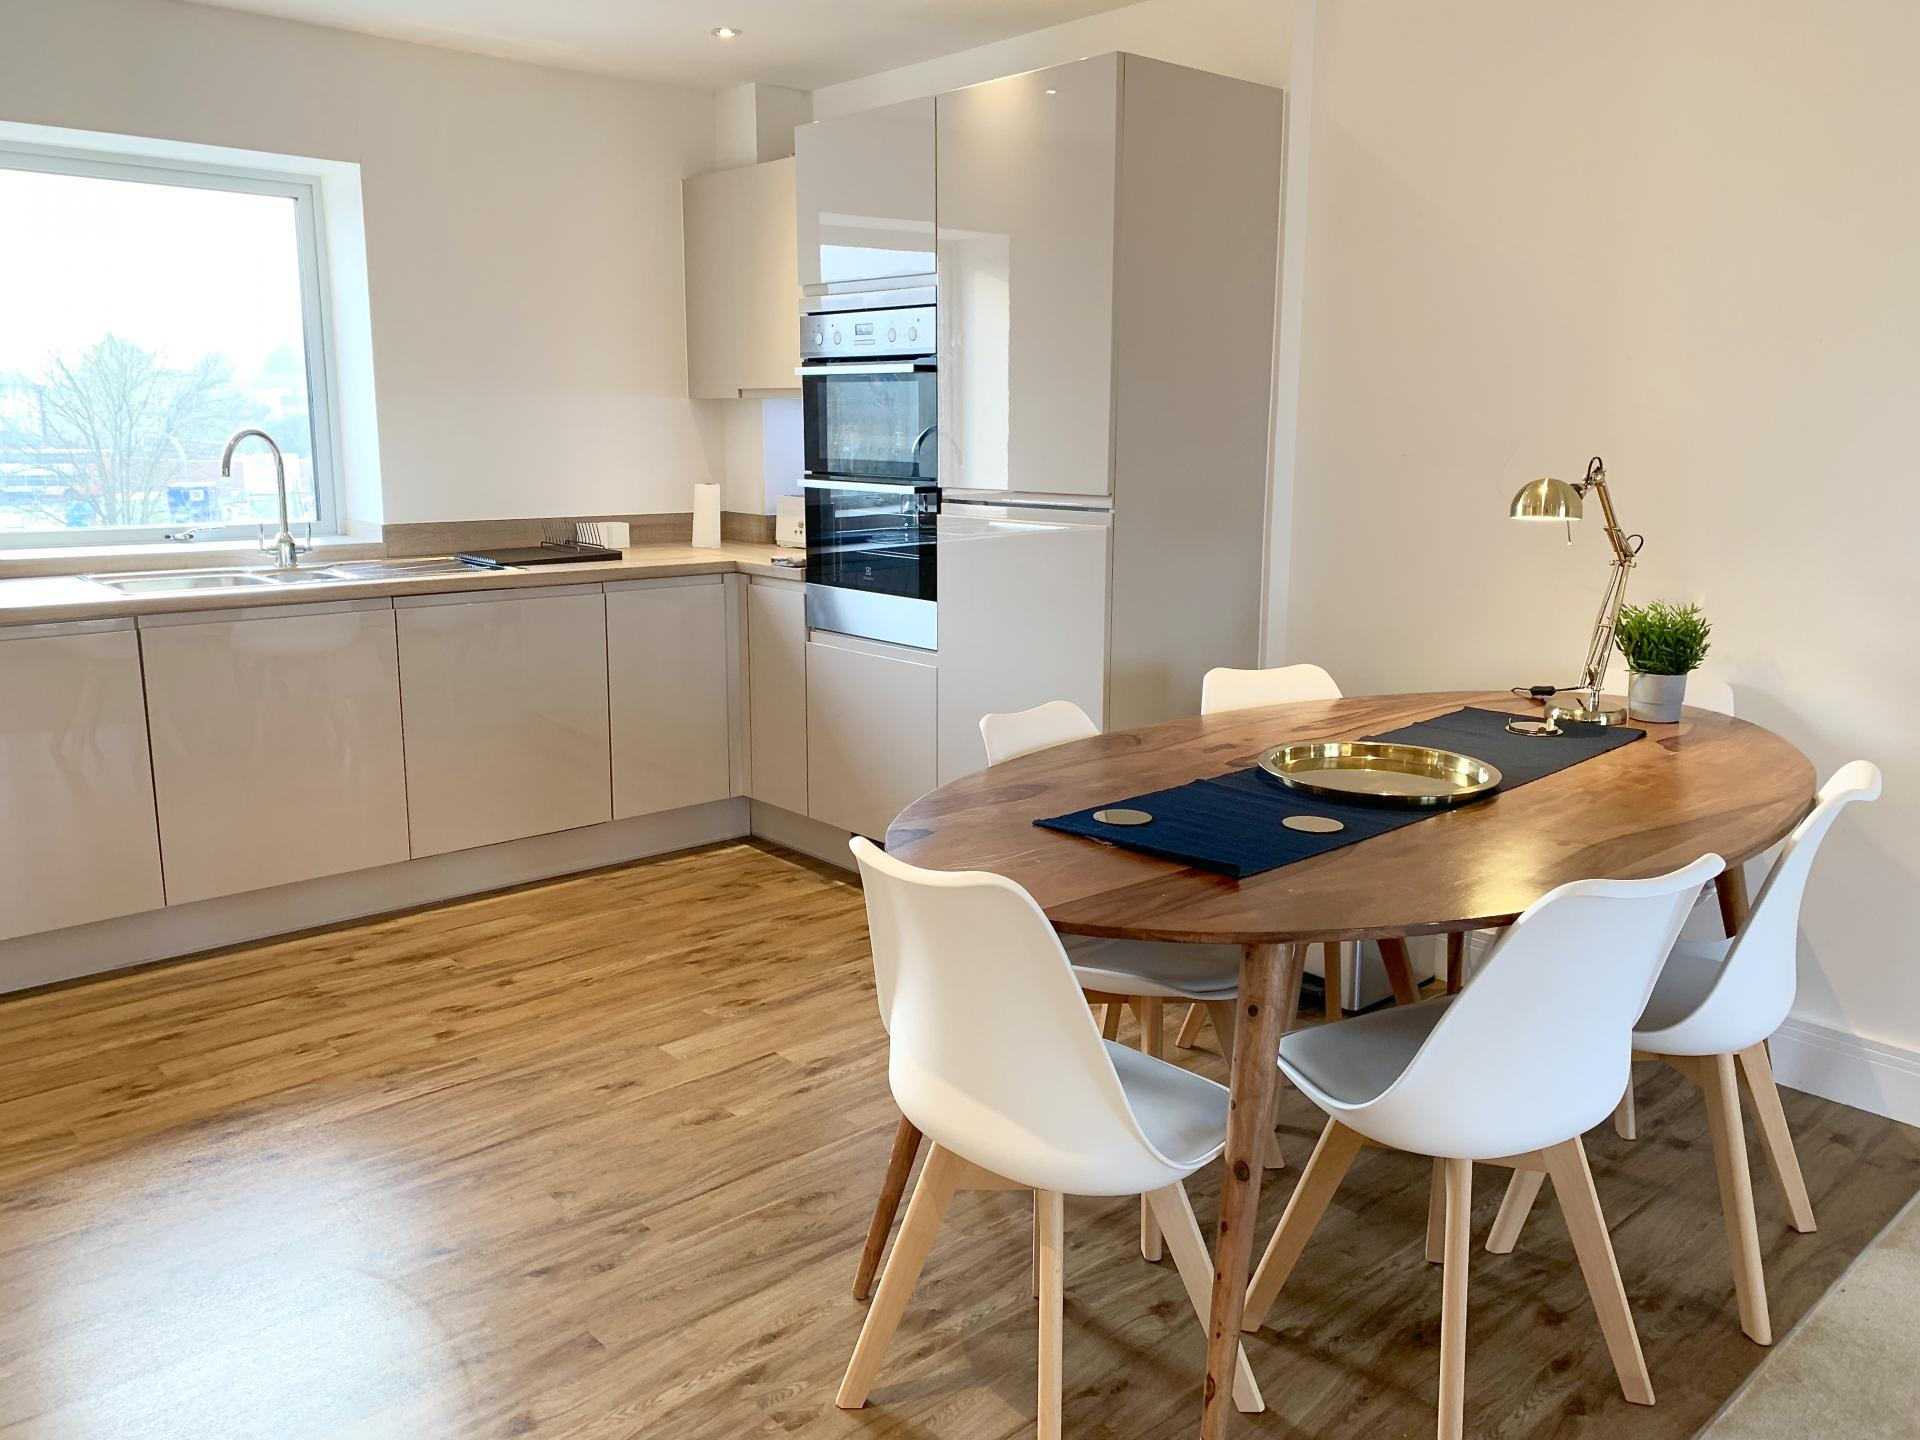 Dining table at Austen House, Centre, Guildford - Citybase Apartments